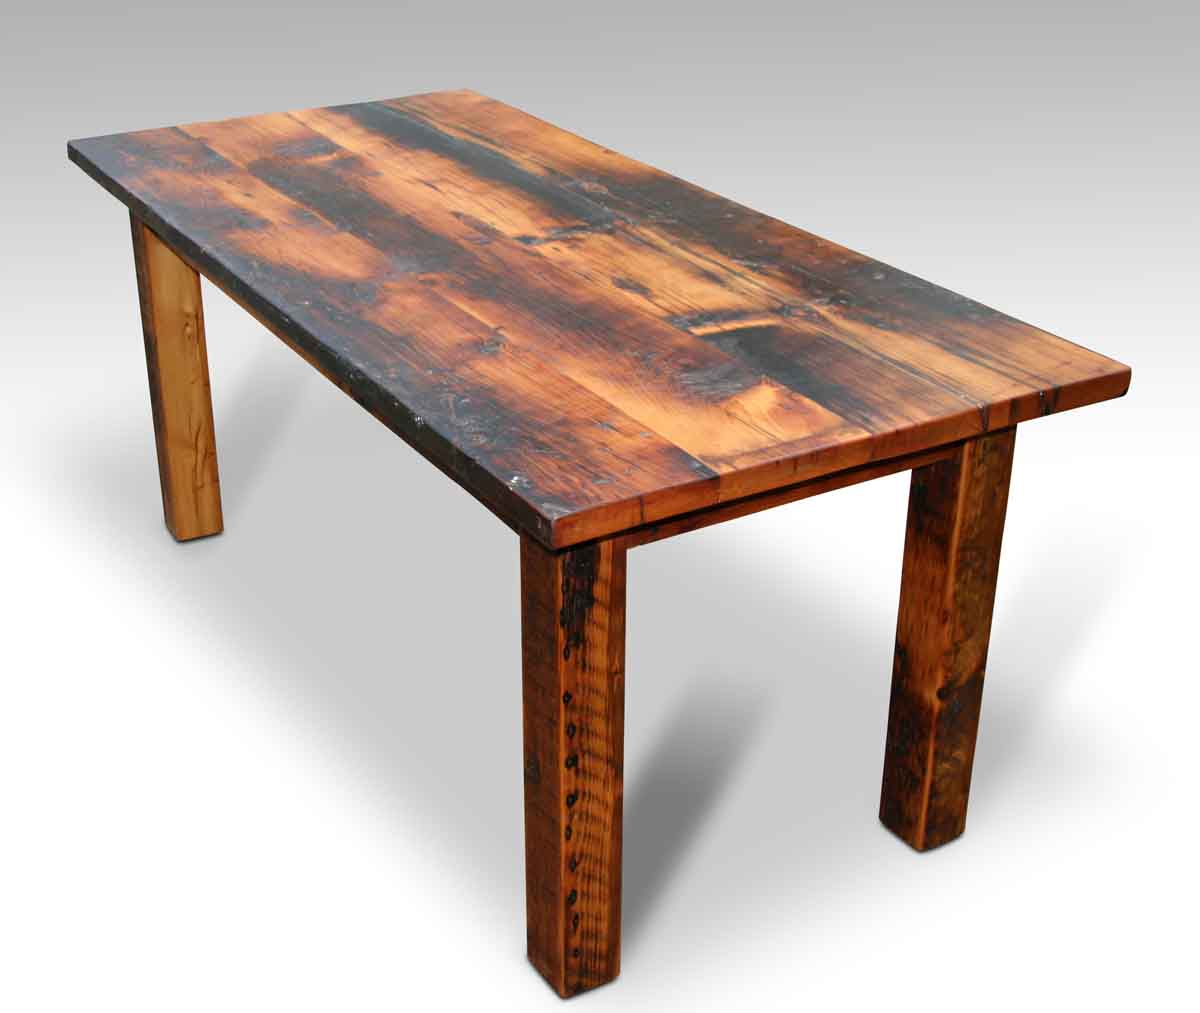 Gentil Customizable Rustic Square Leg Pine Farm Table For Sale At 1stdibs